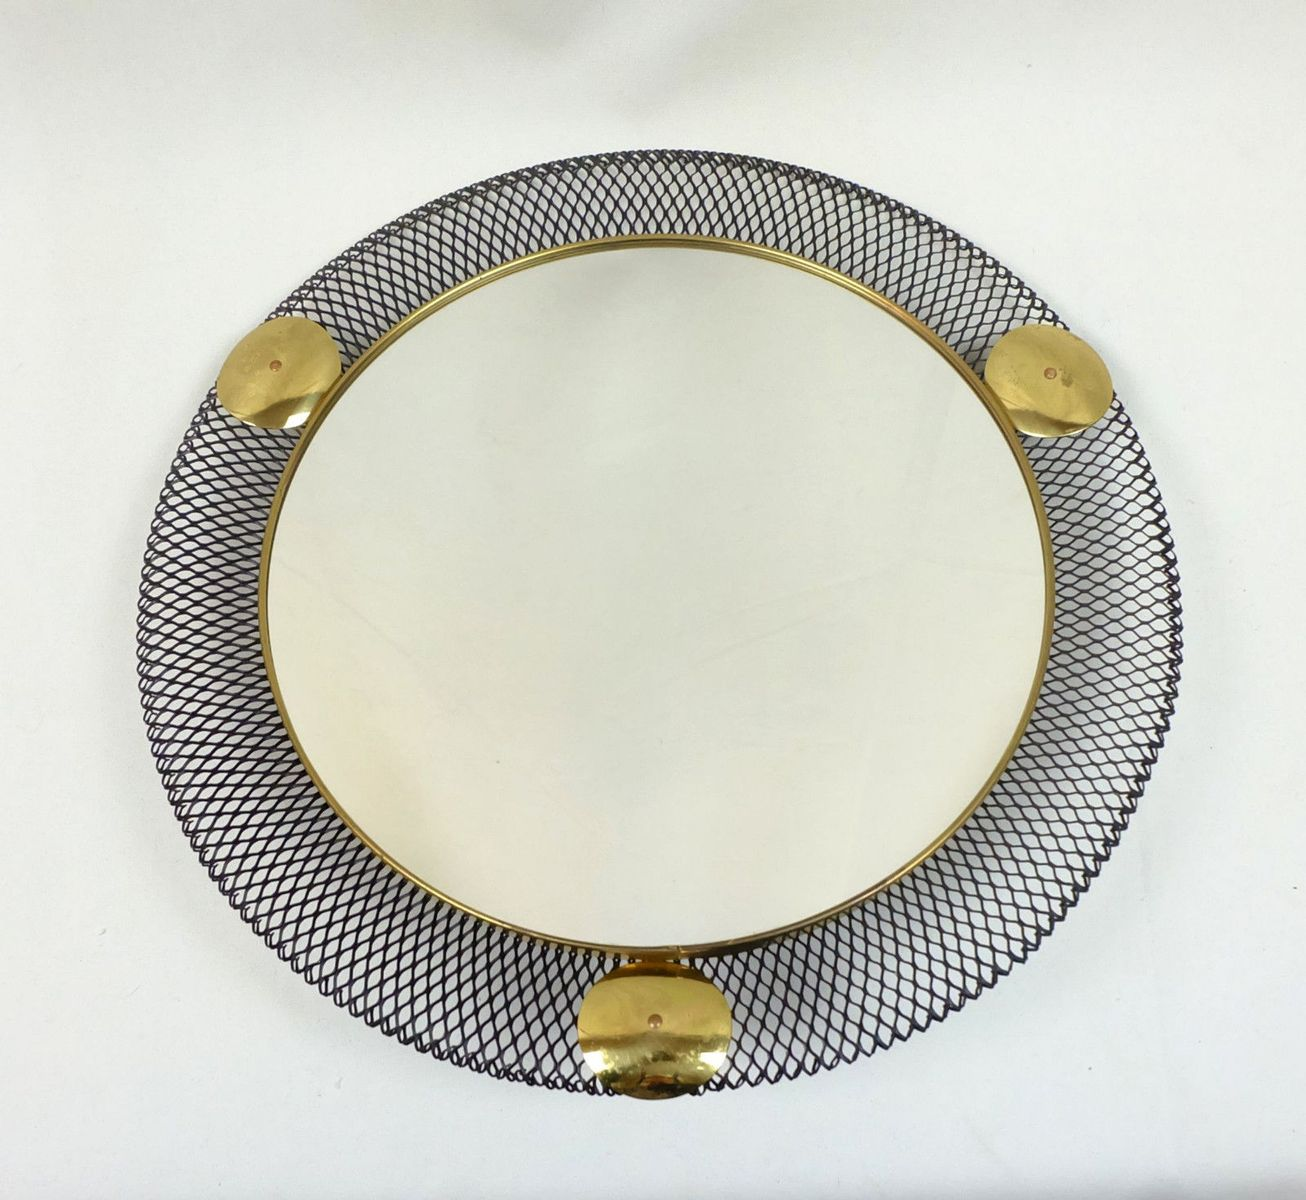 Wall Mirror with Filigree Metal Frame, 1950s for sale at Pamono